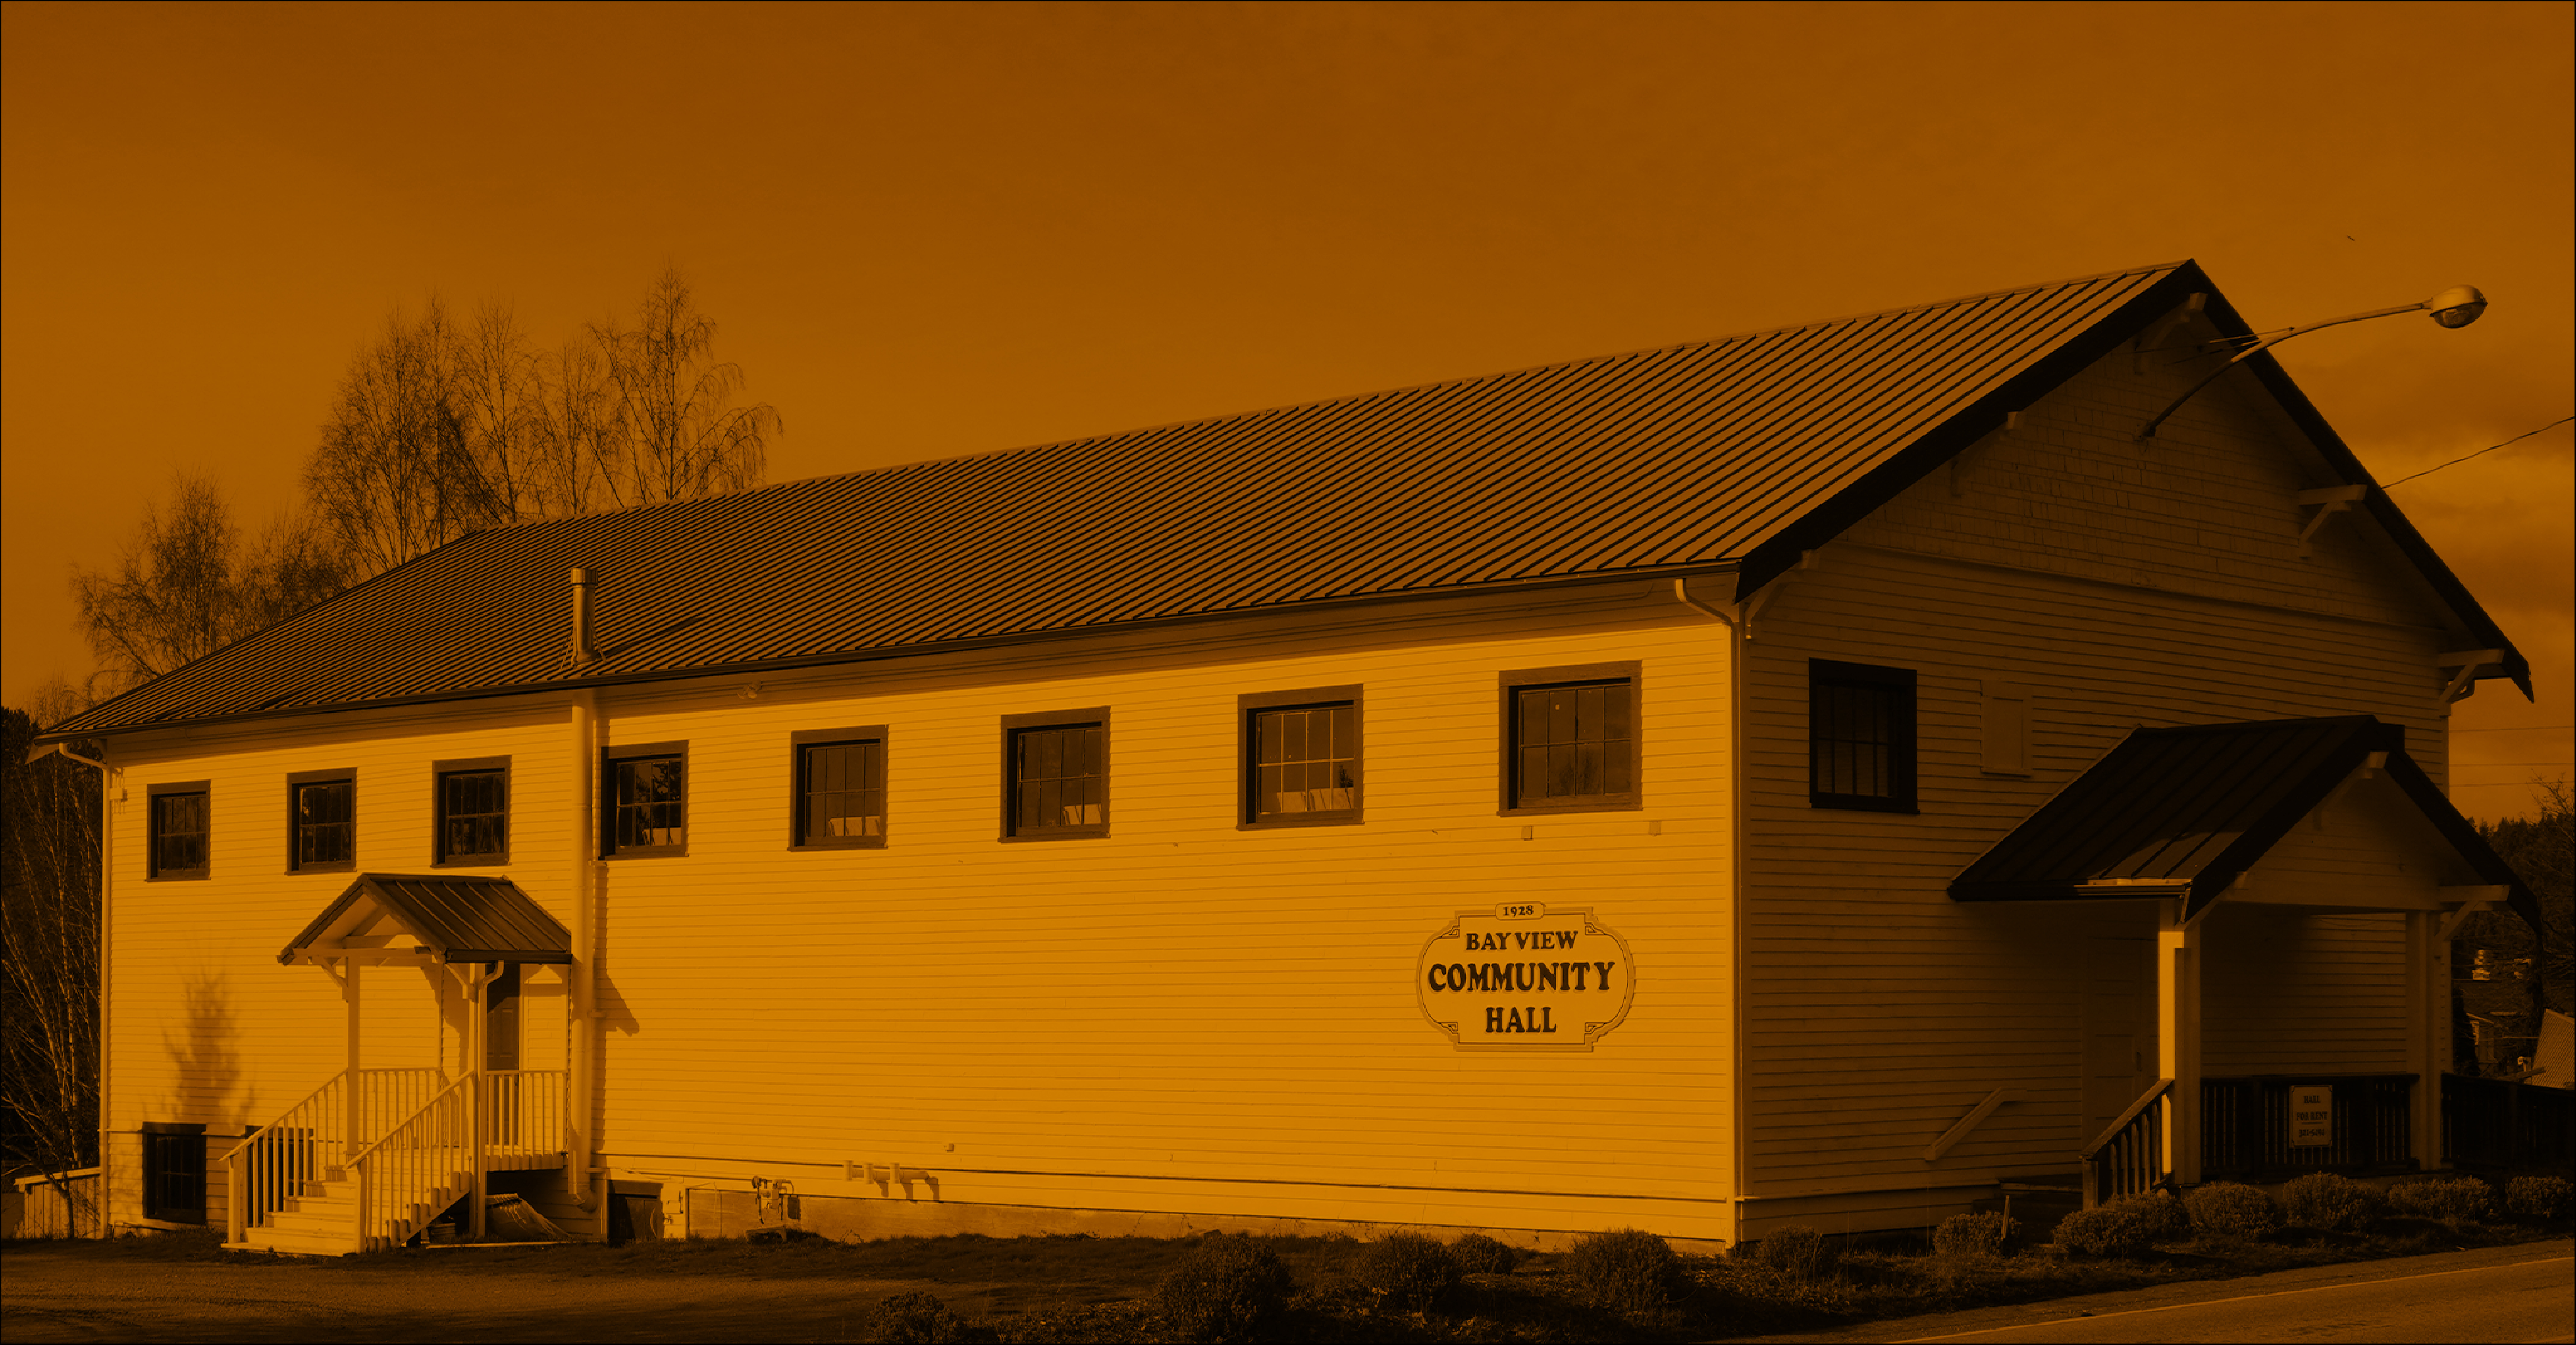 Duotone image of Bayview community hall in orange and black.